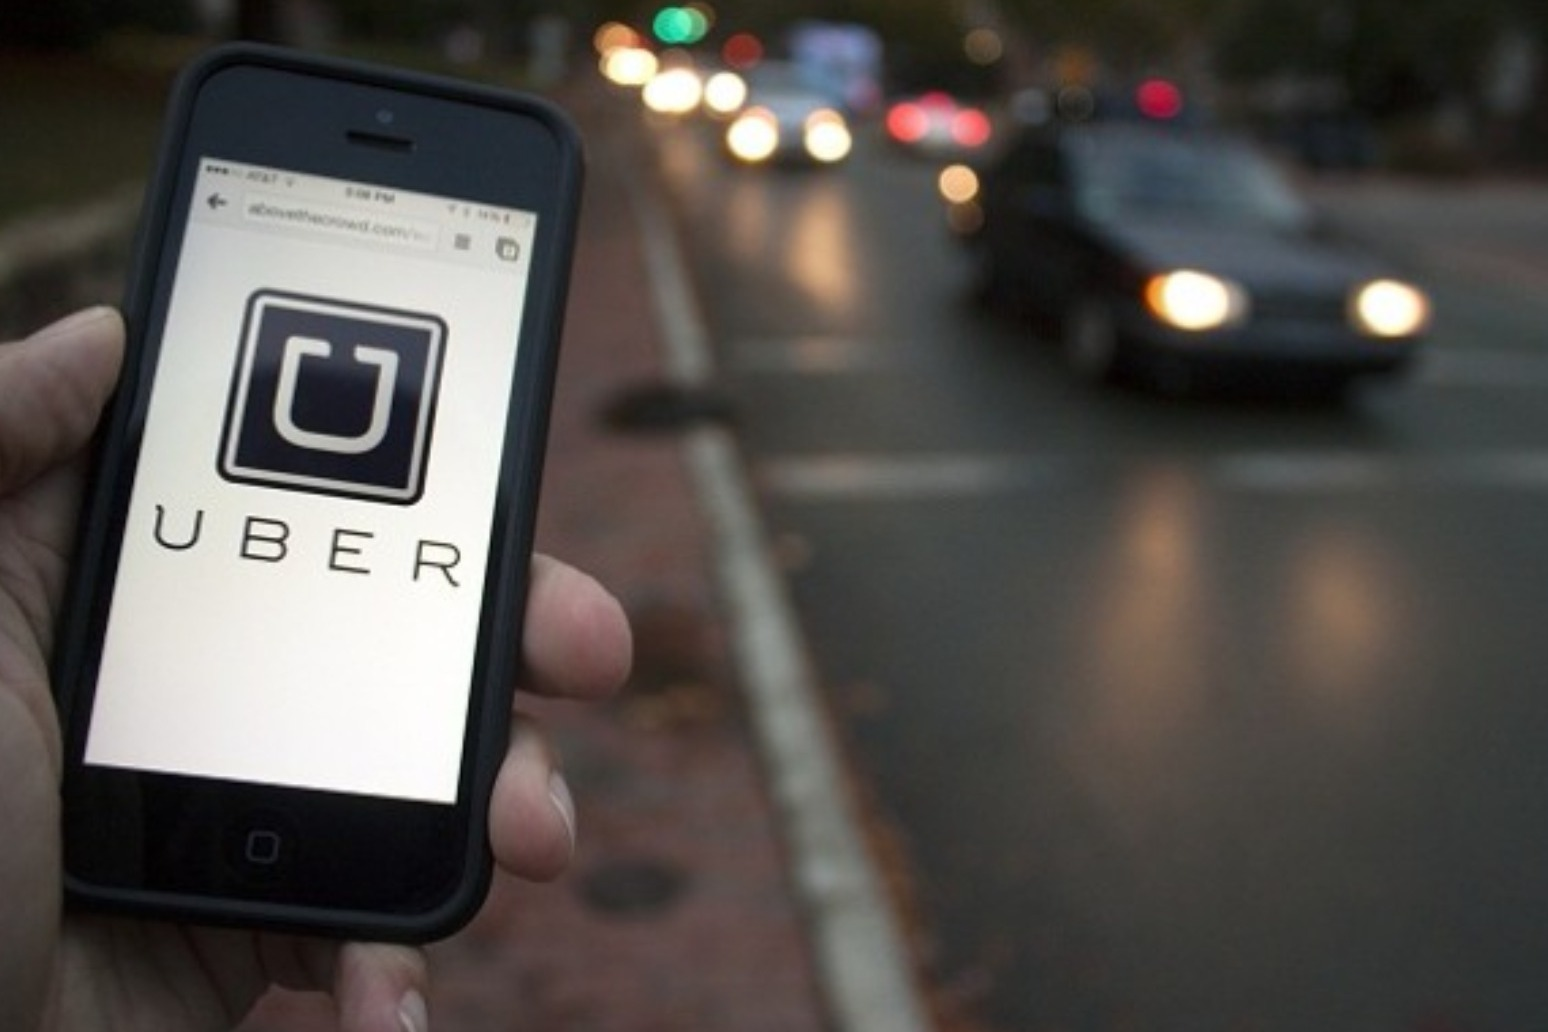 UBER APPEAL CASE TO BE HEARD IN APRIL